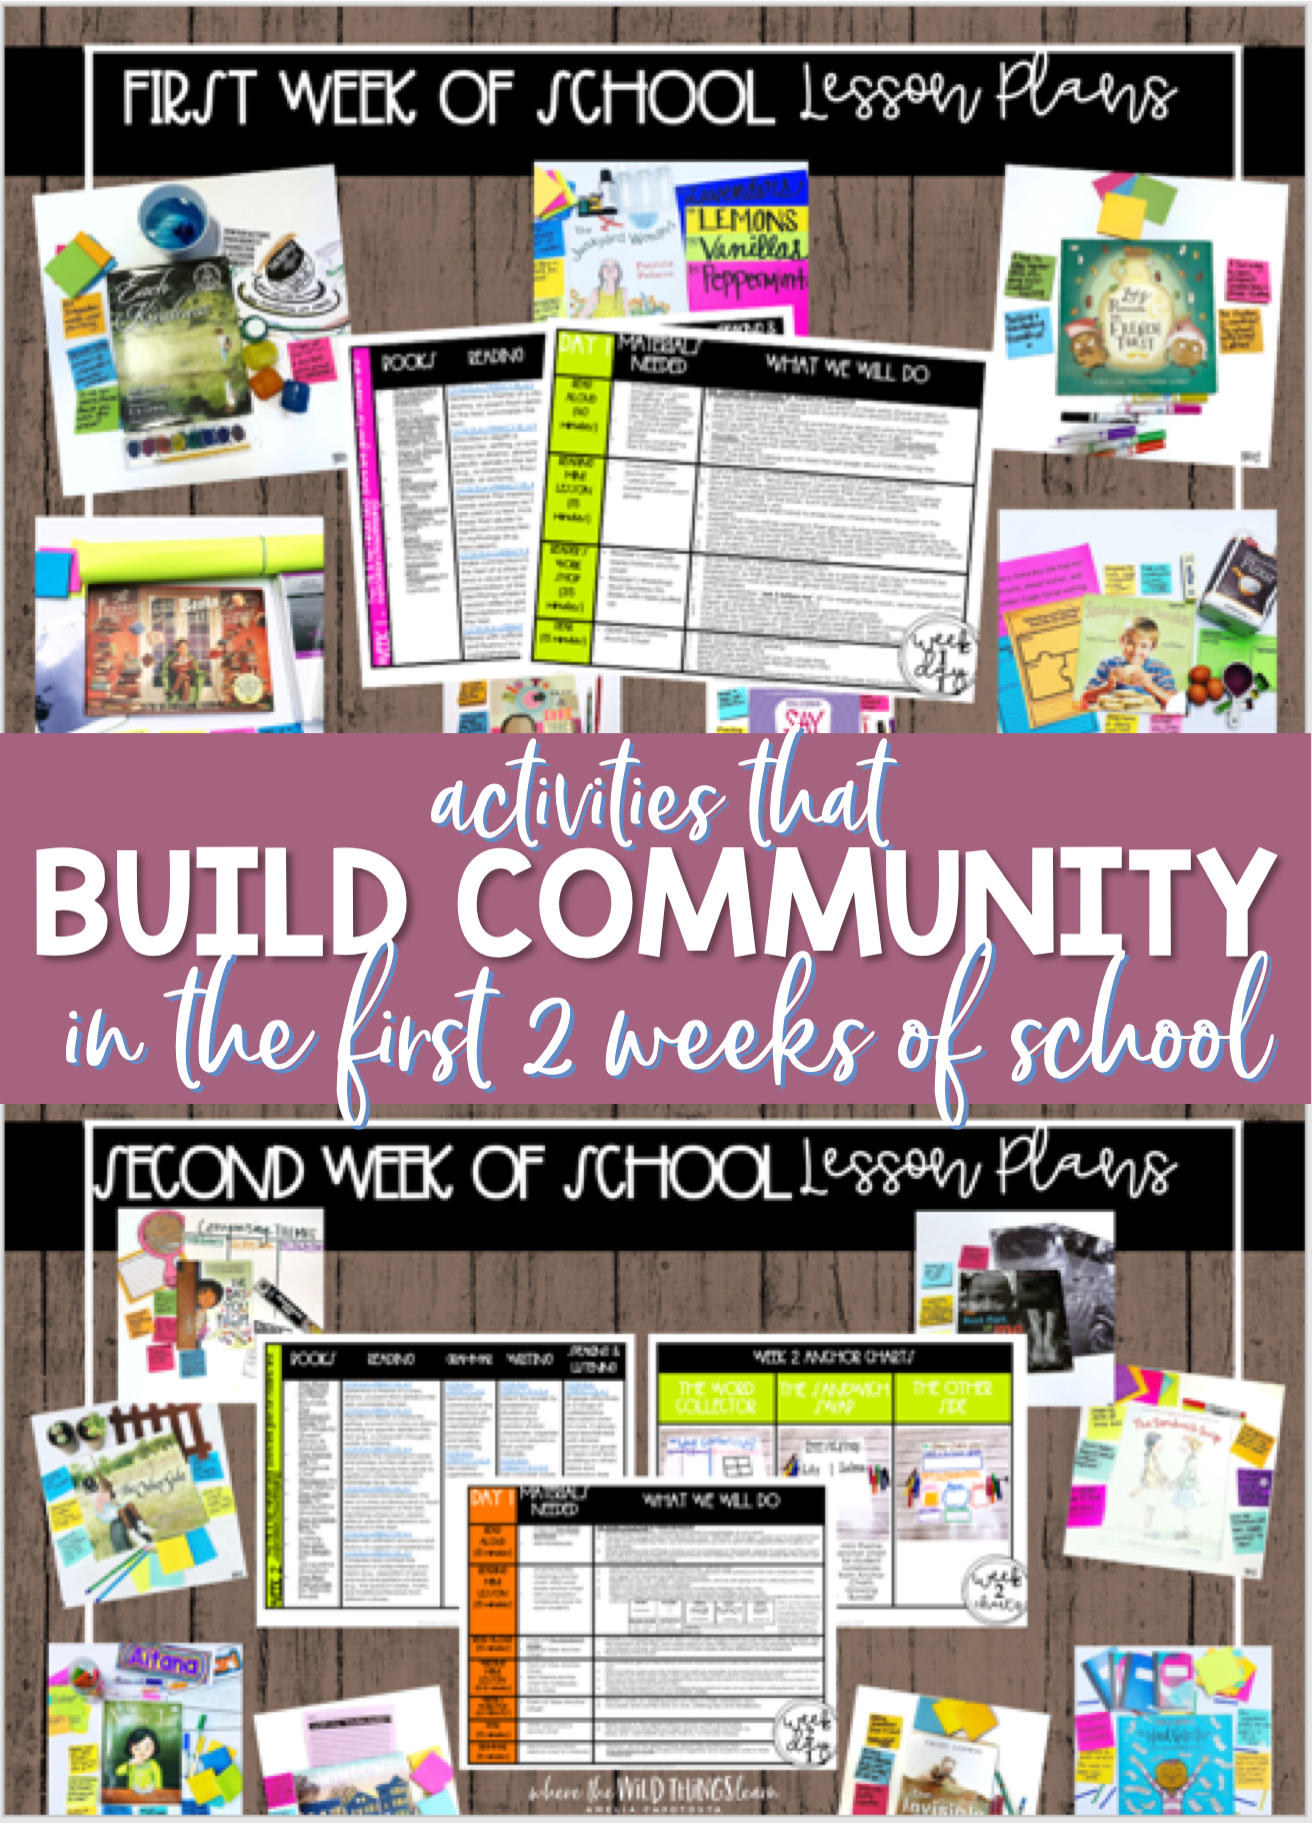 Building Community in the First 2 Weeks of School